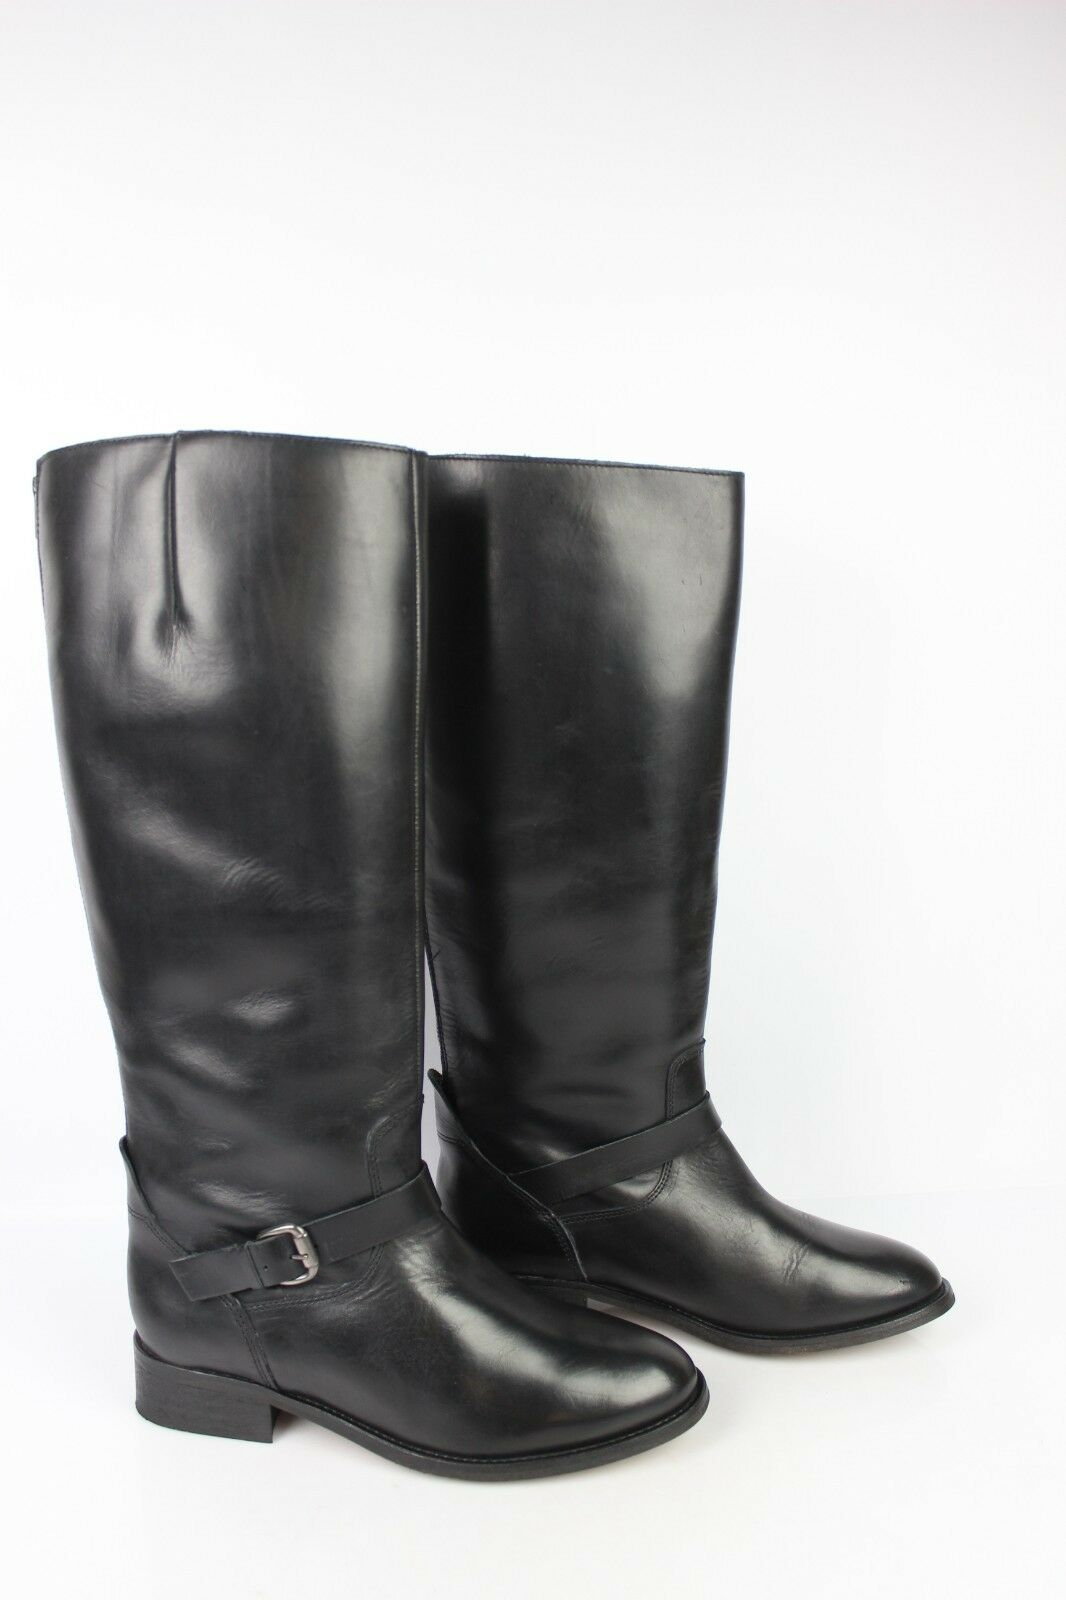 Riding Boots ANDRE Black Leather T 41 VERY GOOD CONDITION